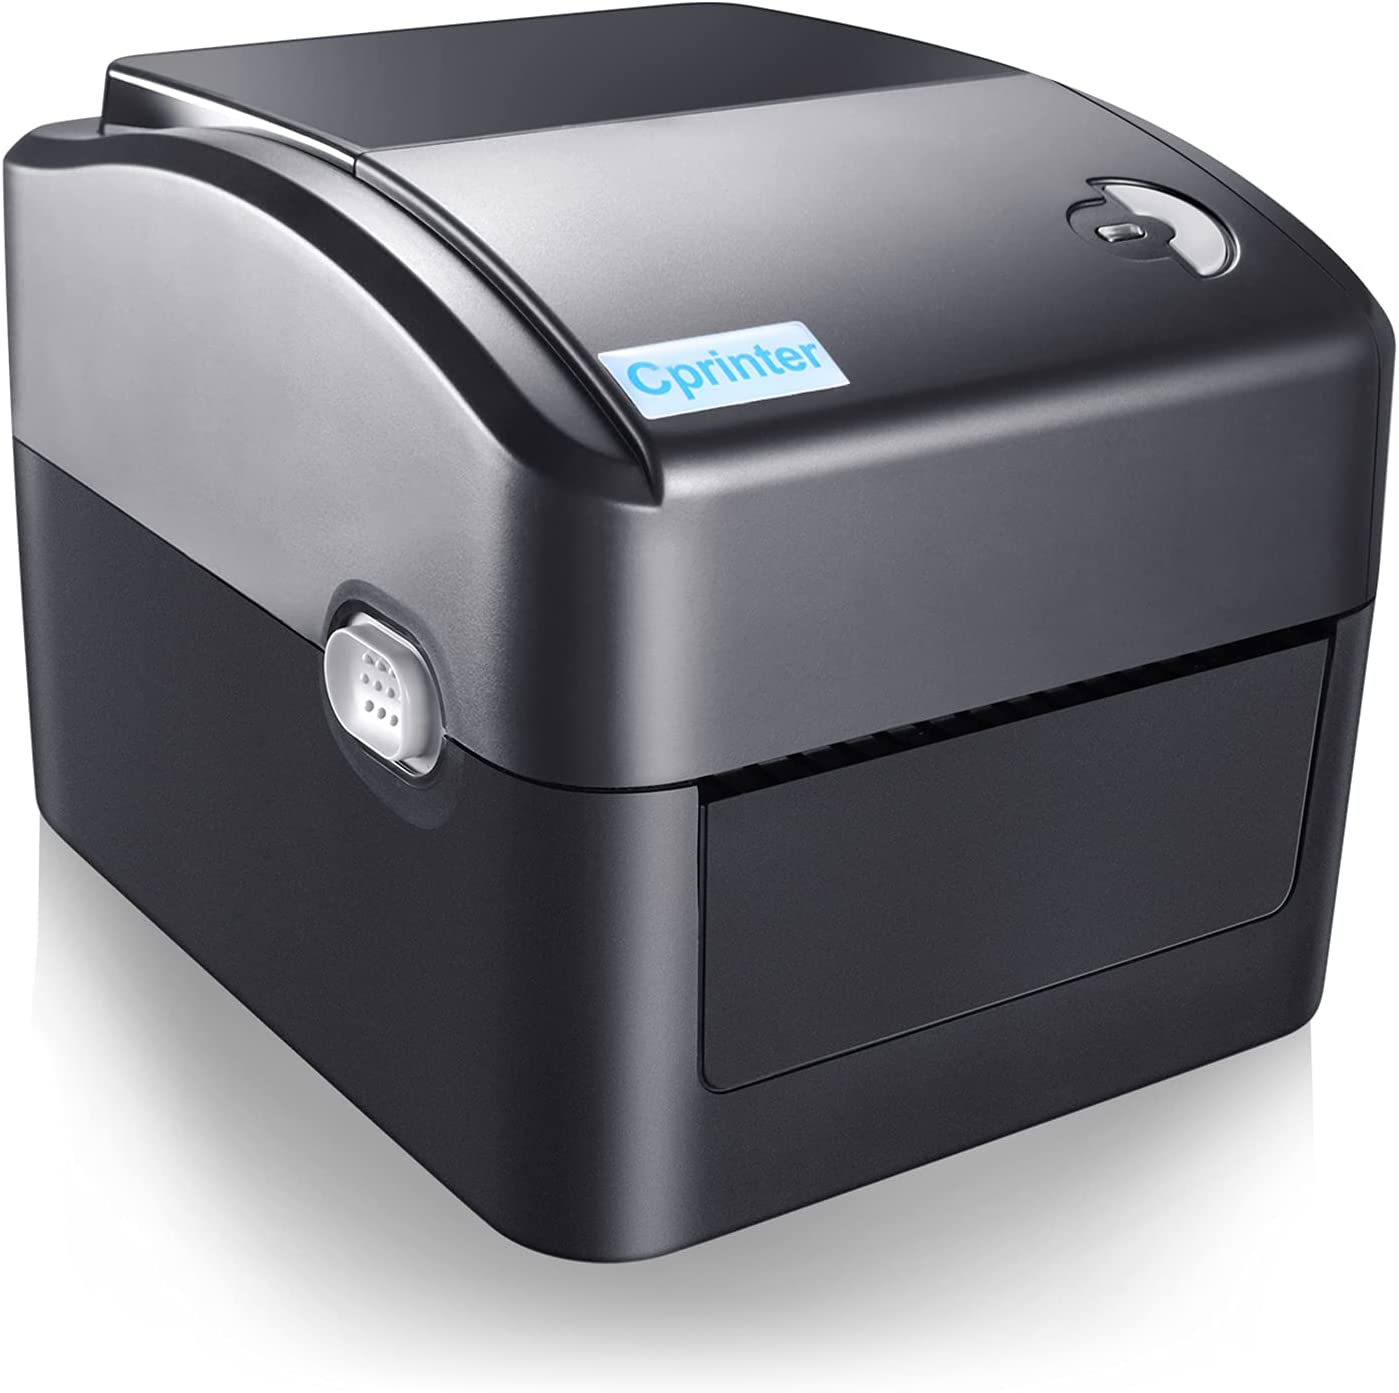 CPRINTER Special sale item Thermal safety Label Printer can use P USB Computer Mobile or